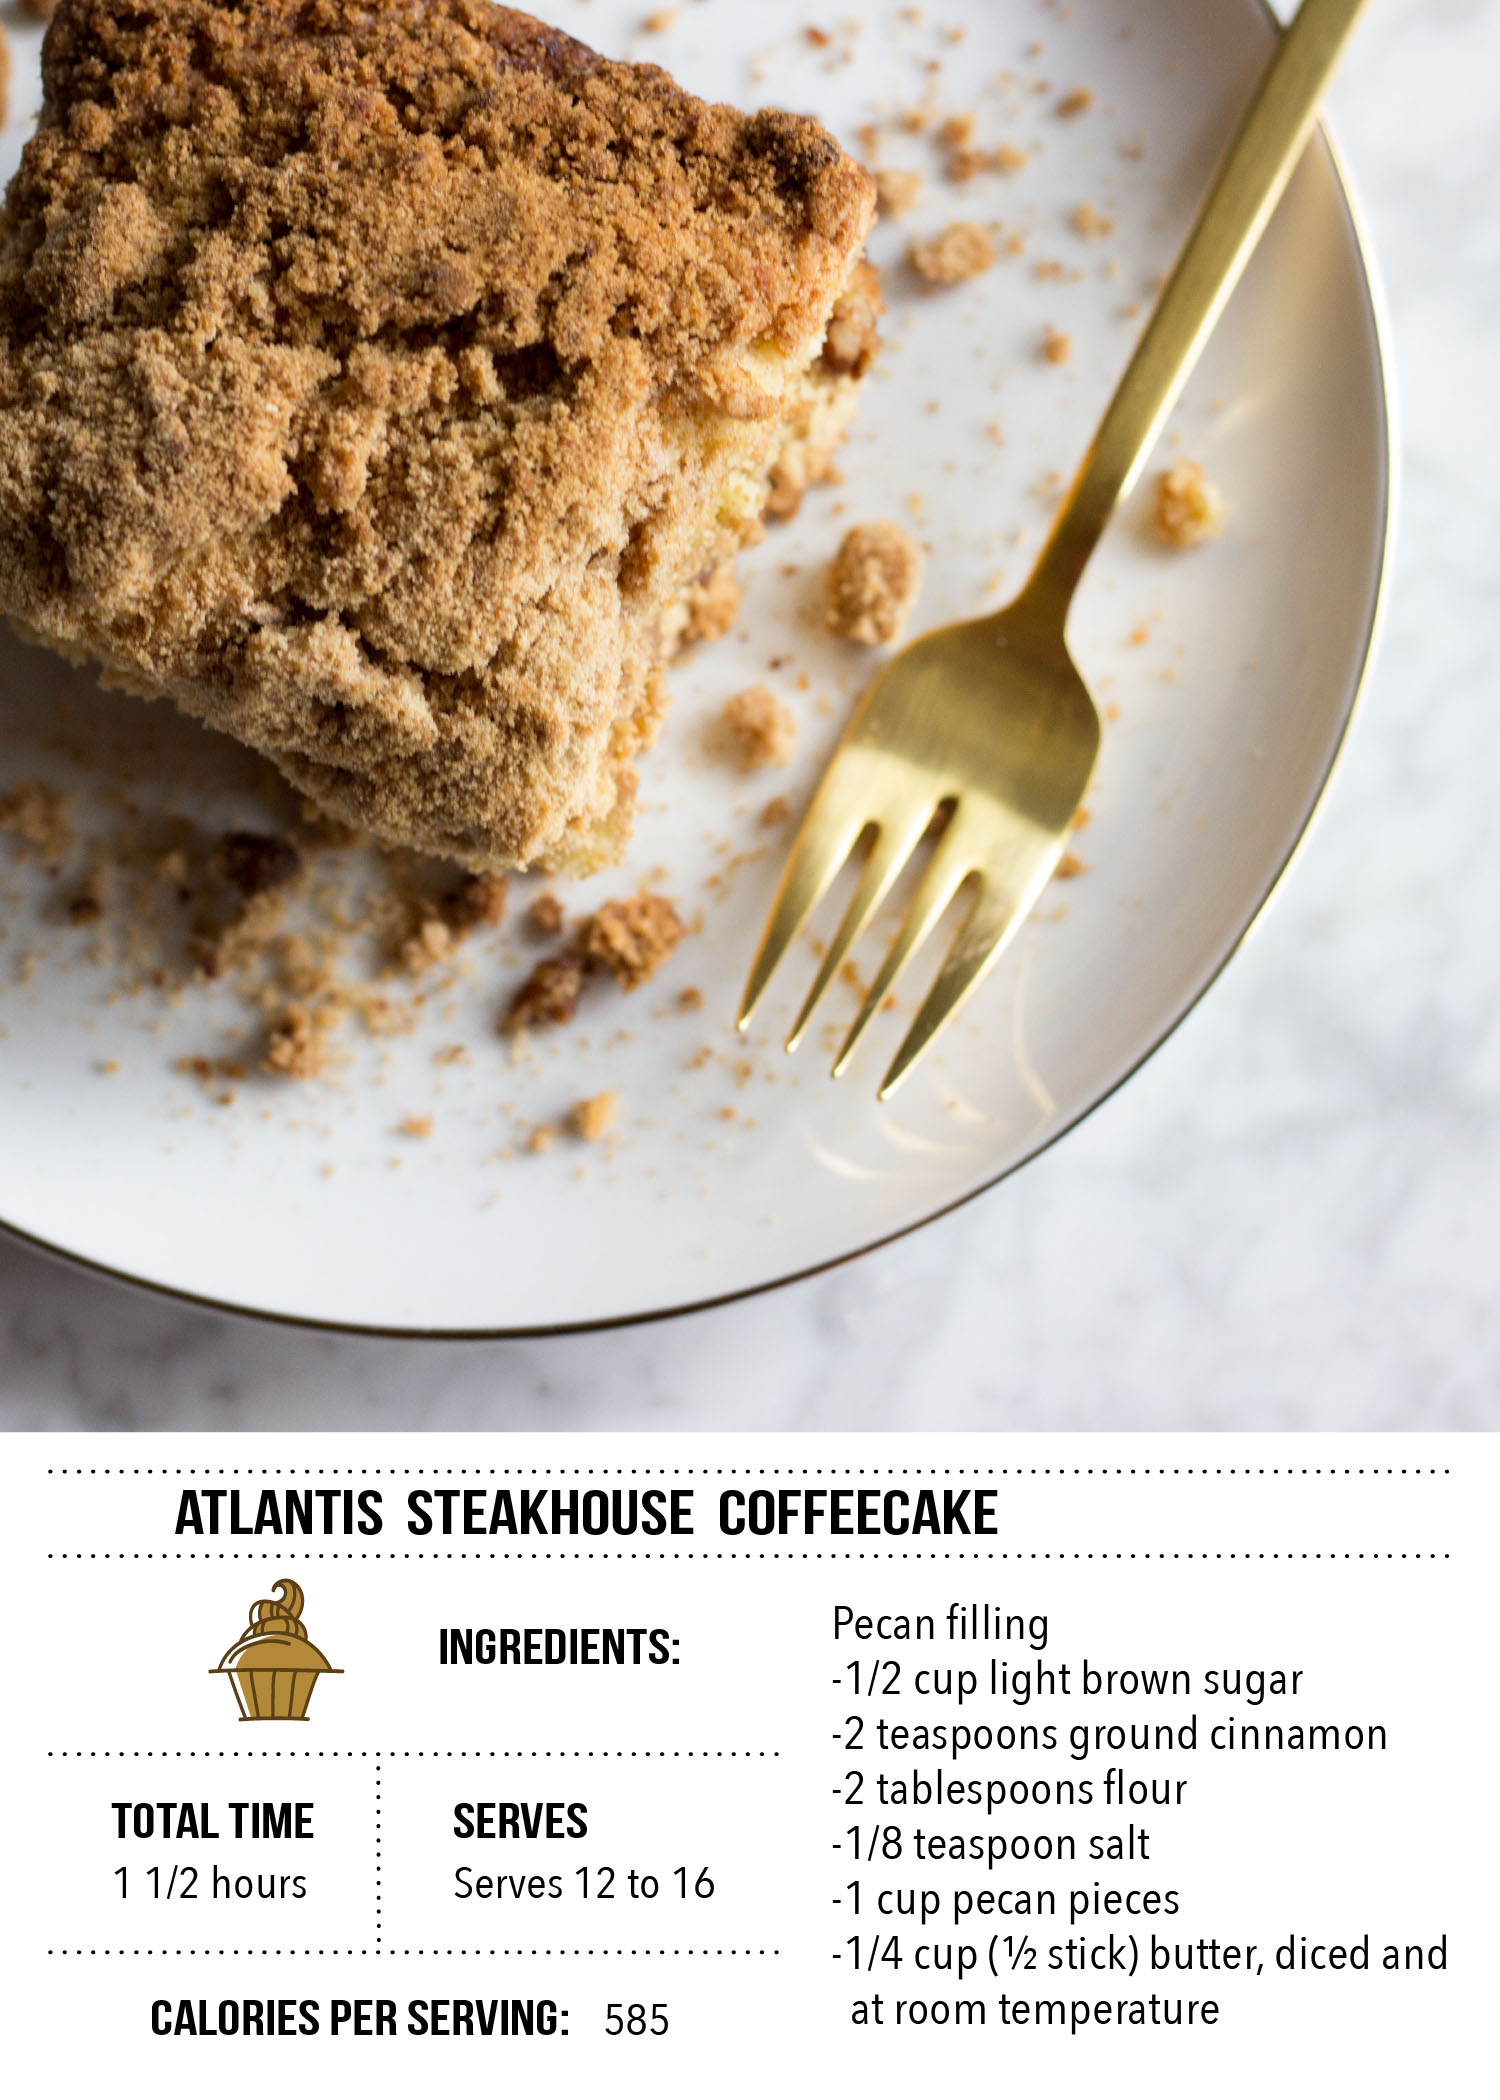 Atlantis Steakhouse Coffeecake Recipe Card